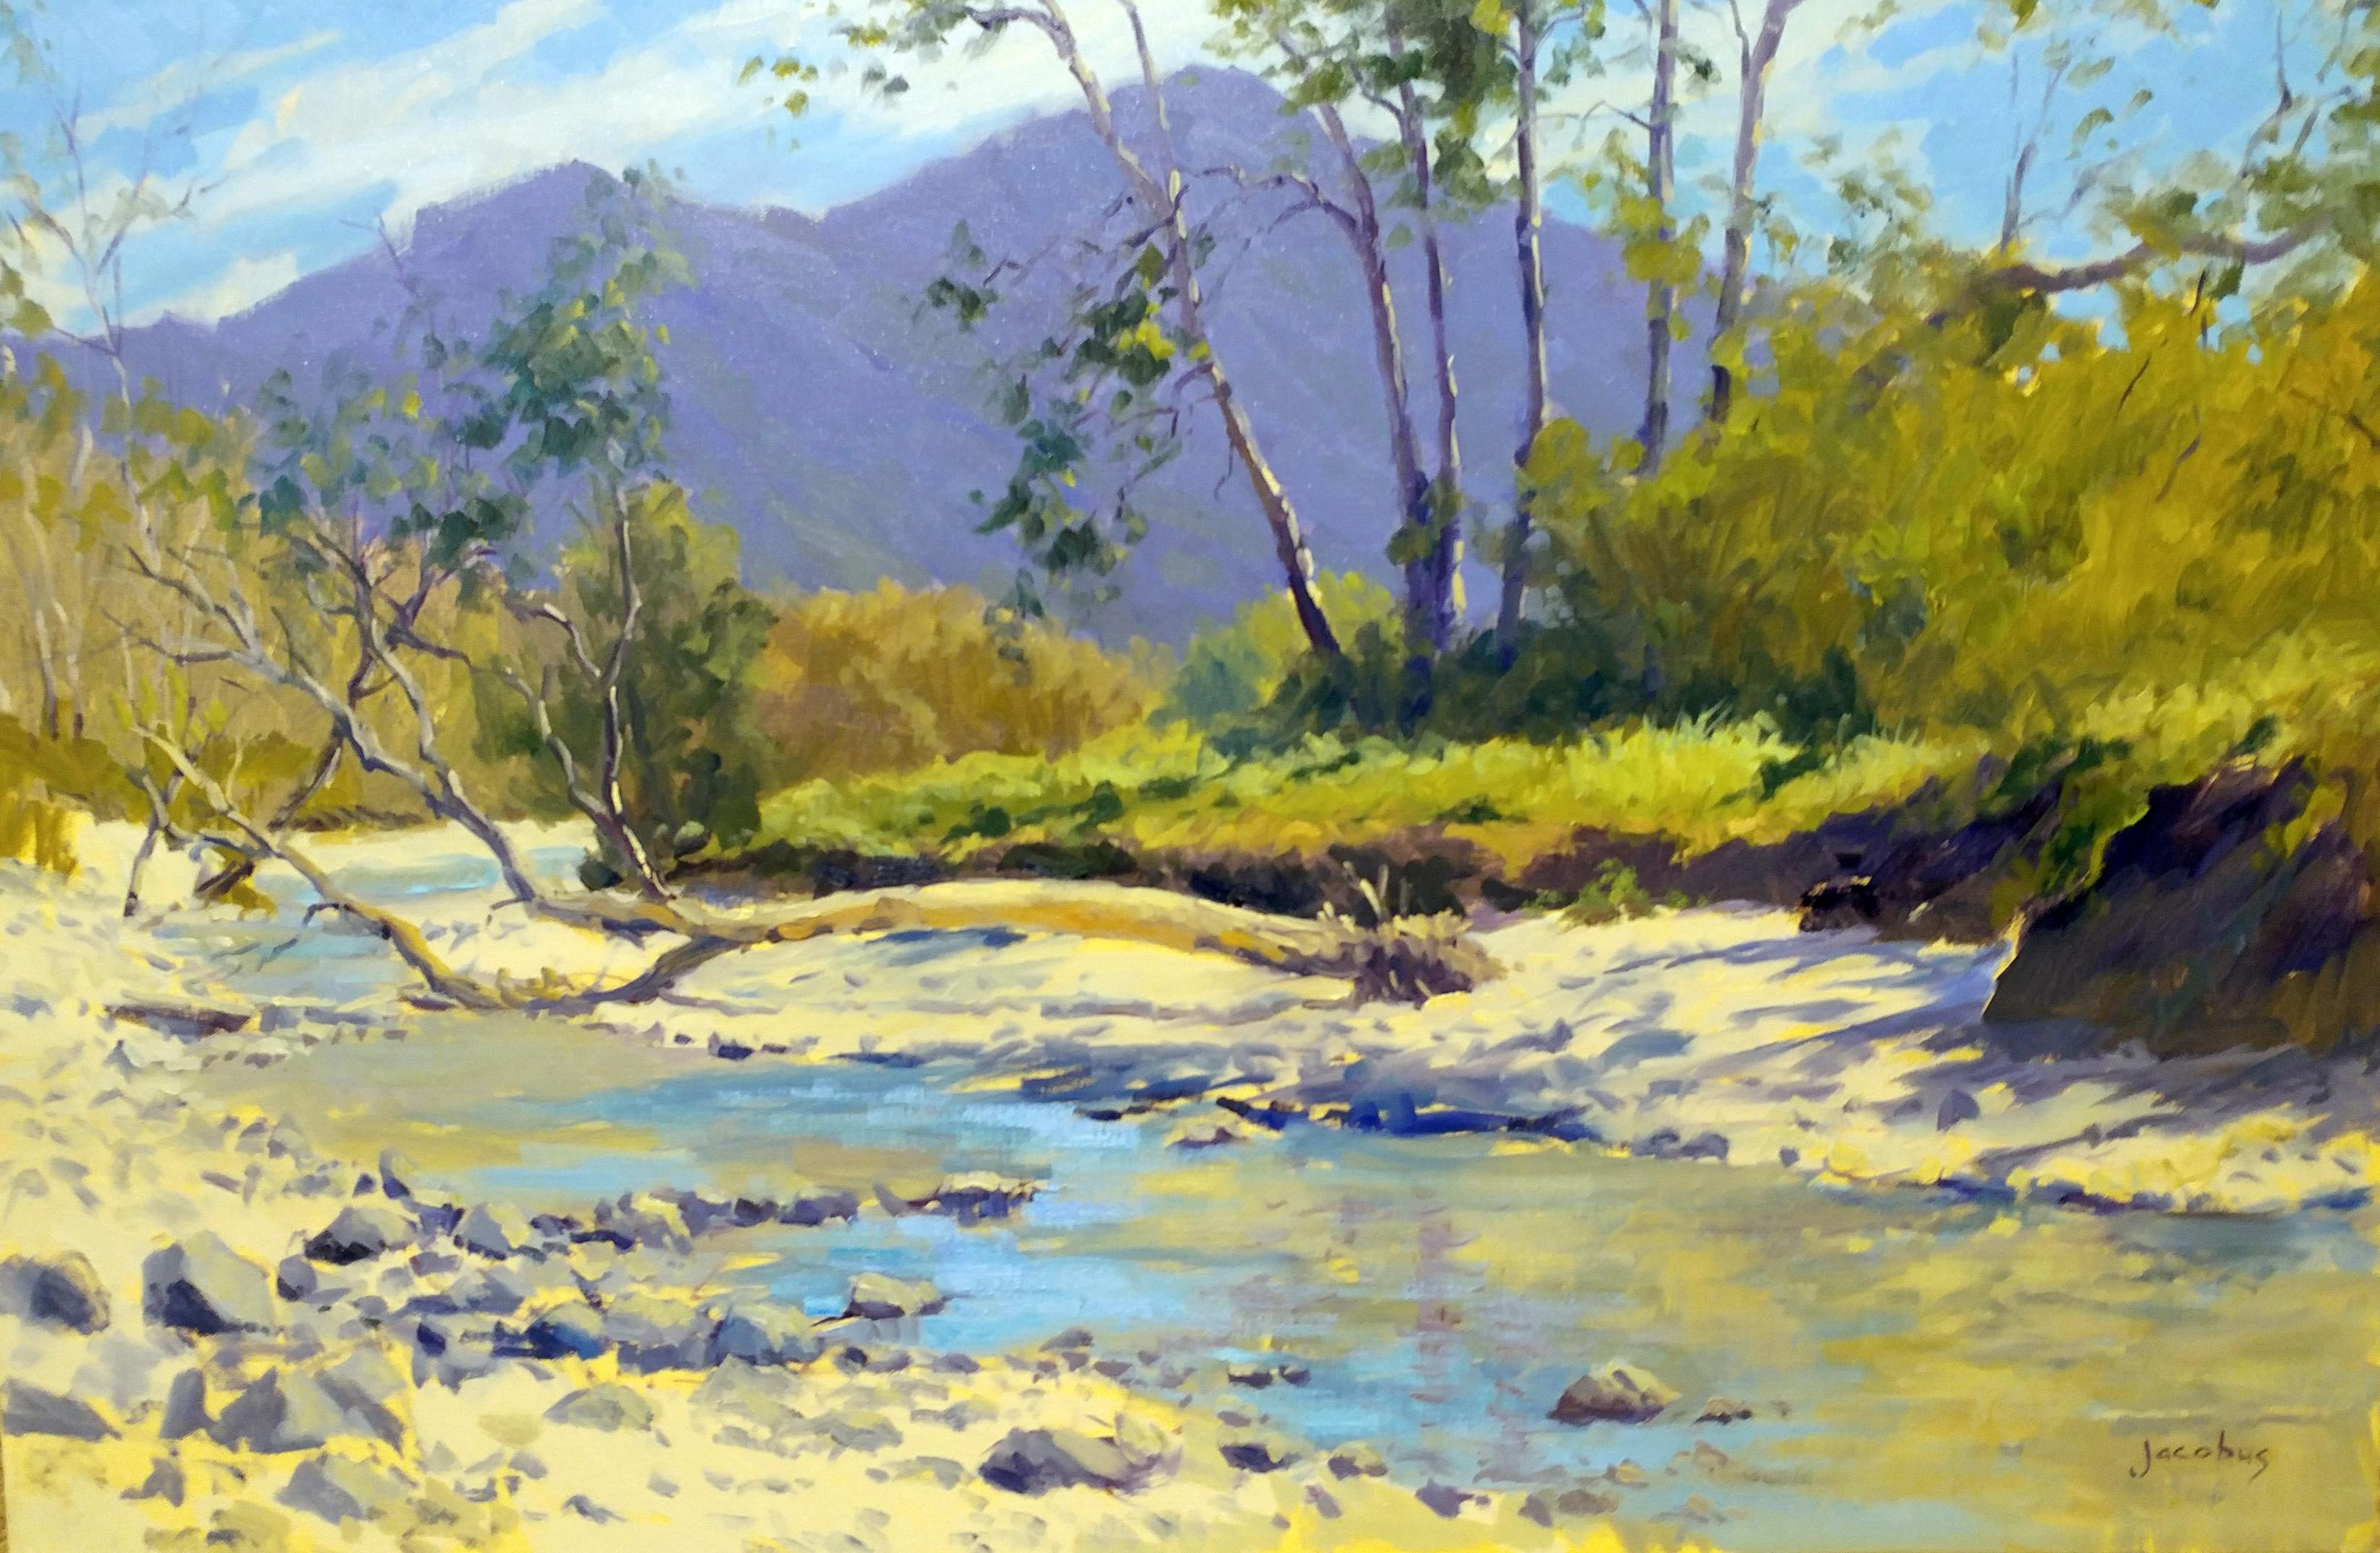 Jacobus Baas Sycamores Southern California Landscape Painting With Reflecting Stream At 1stdibs